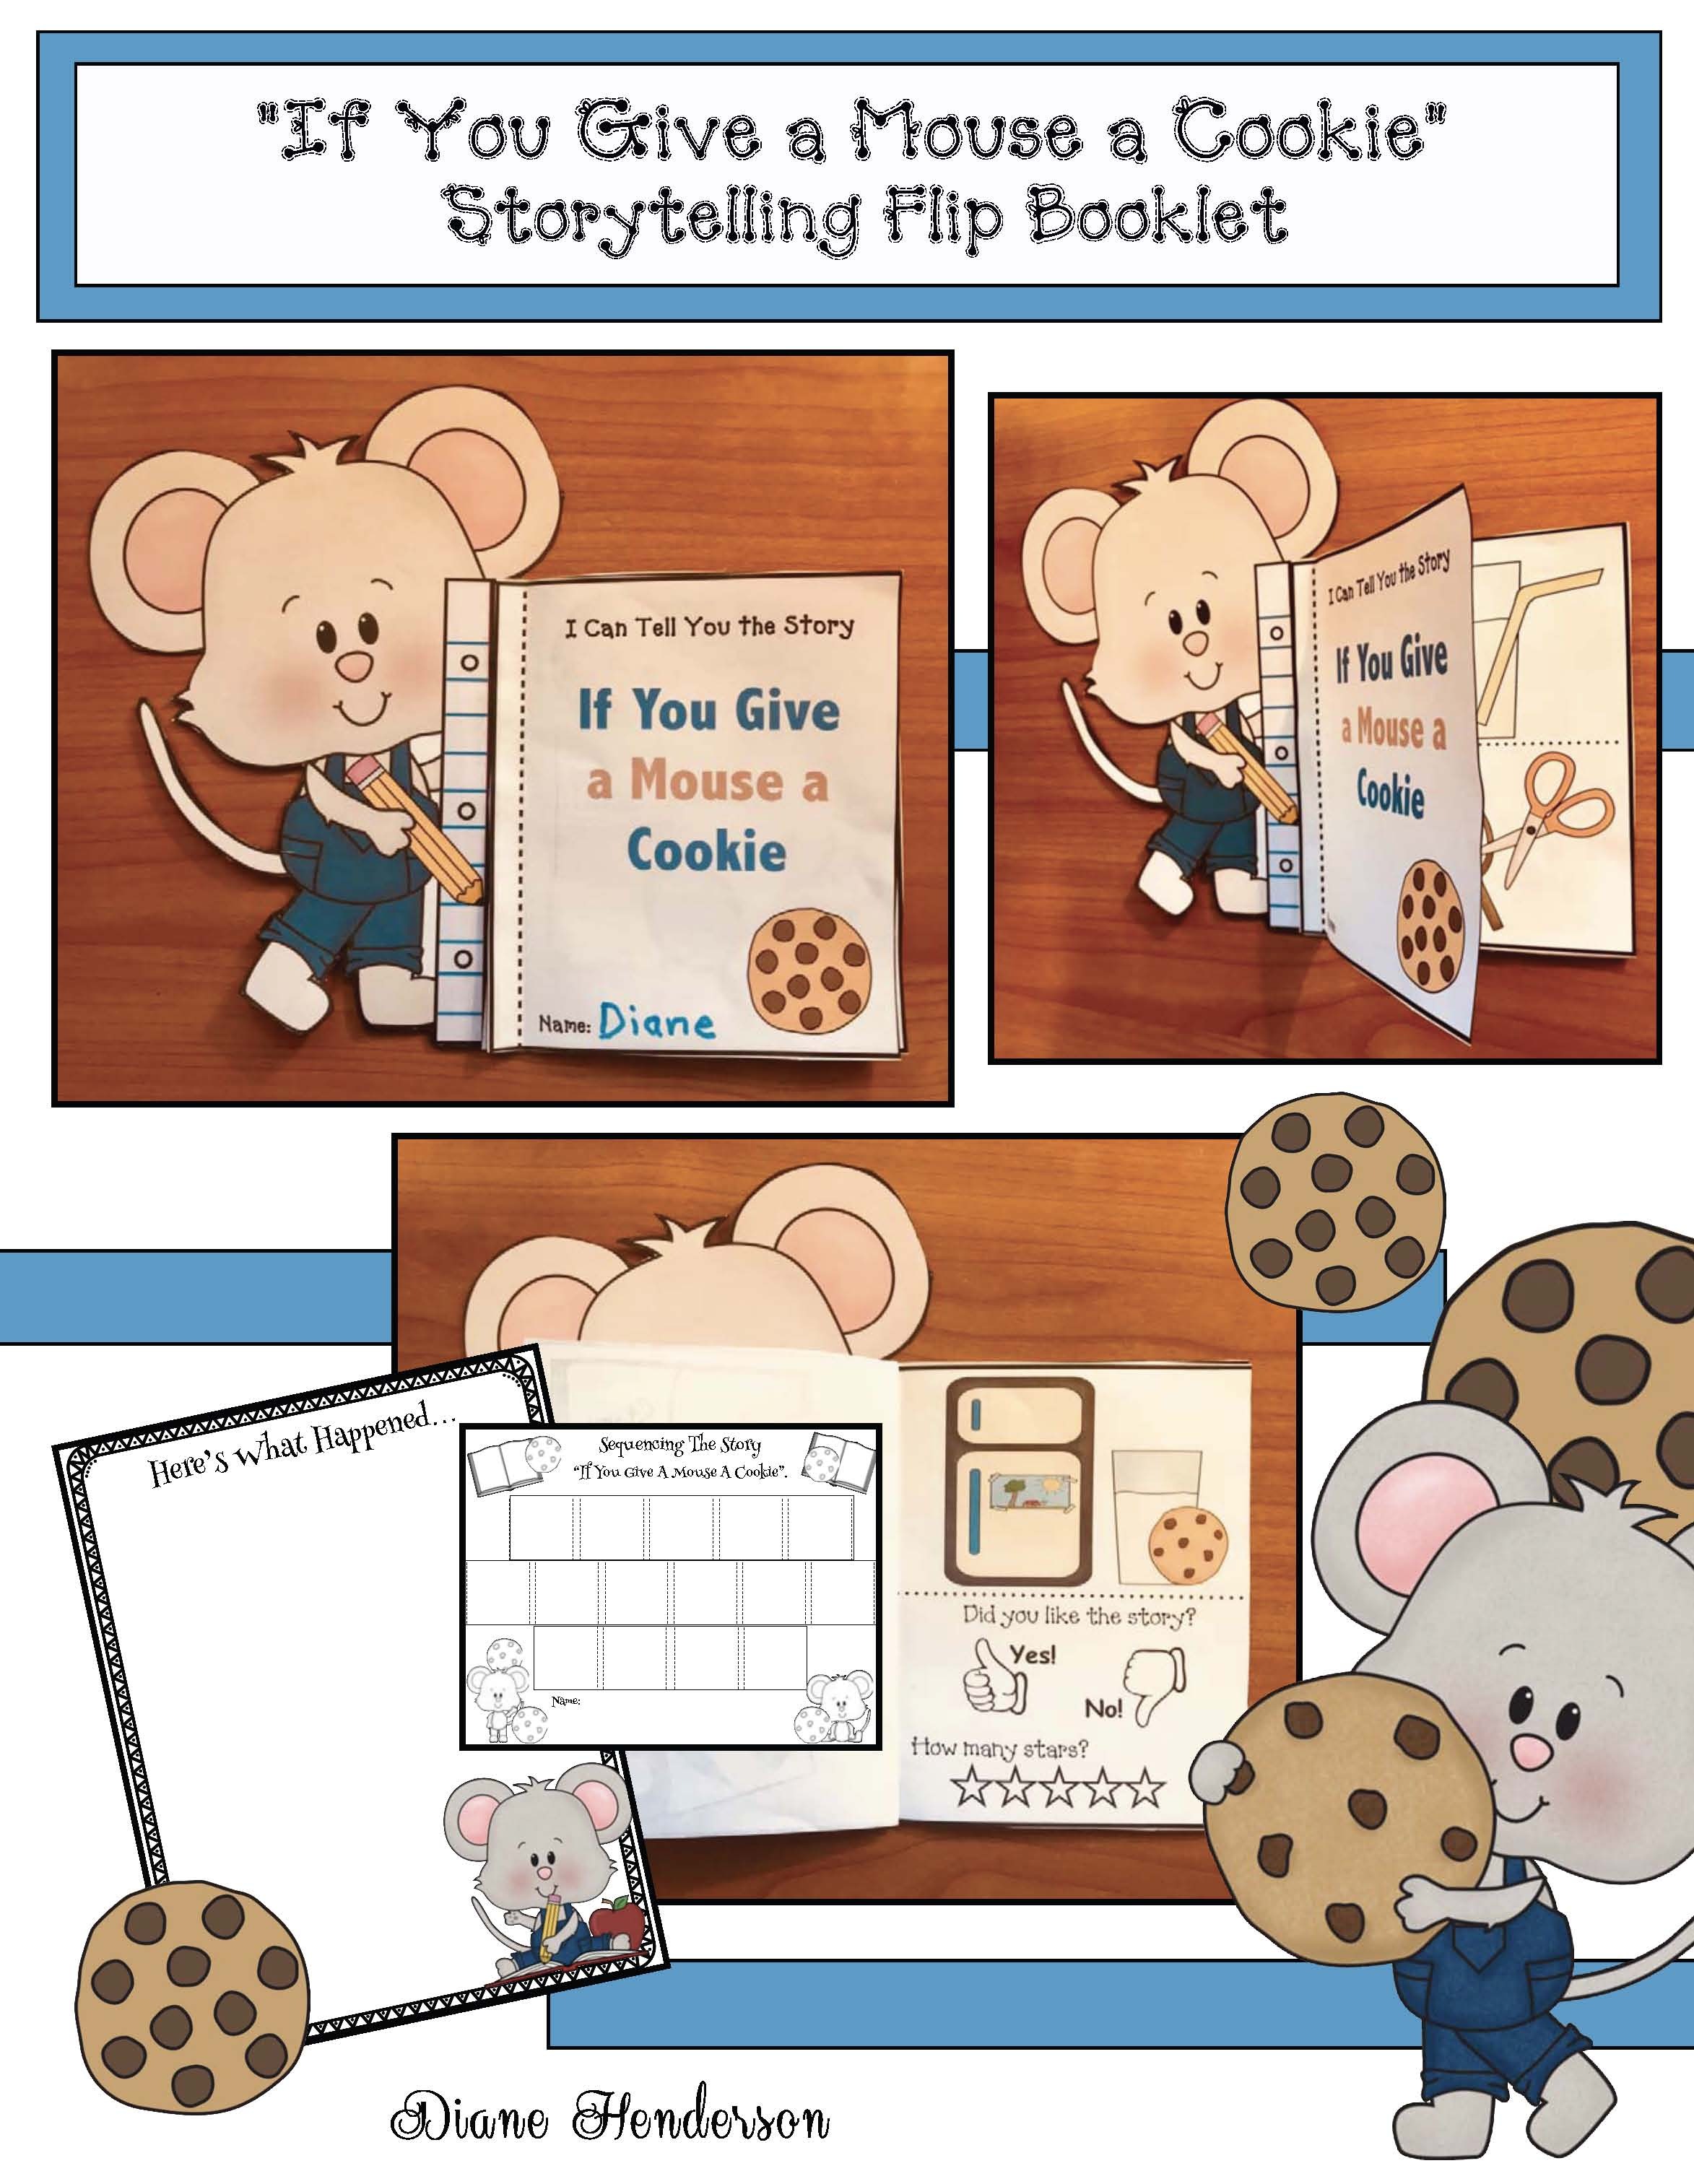 If you give a mouse a cookie activities, mice crafts, mouse craft, retelling a story activities, sequencing a story activities, activities for Laura Numeroff bookls